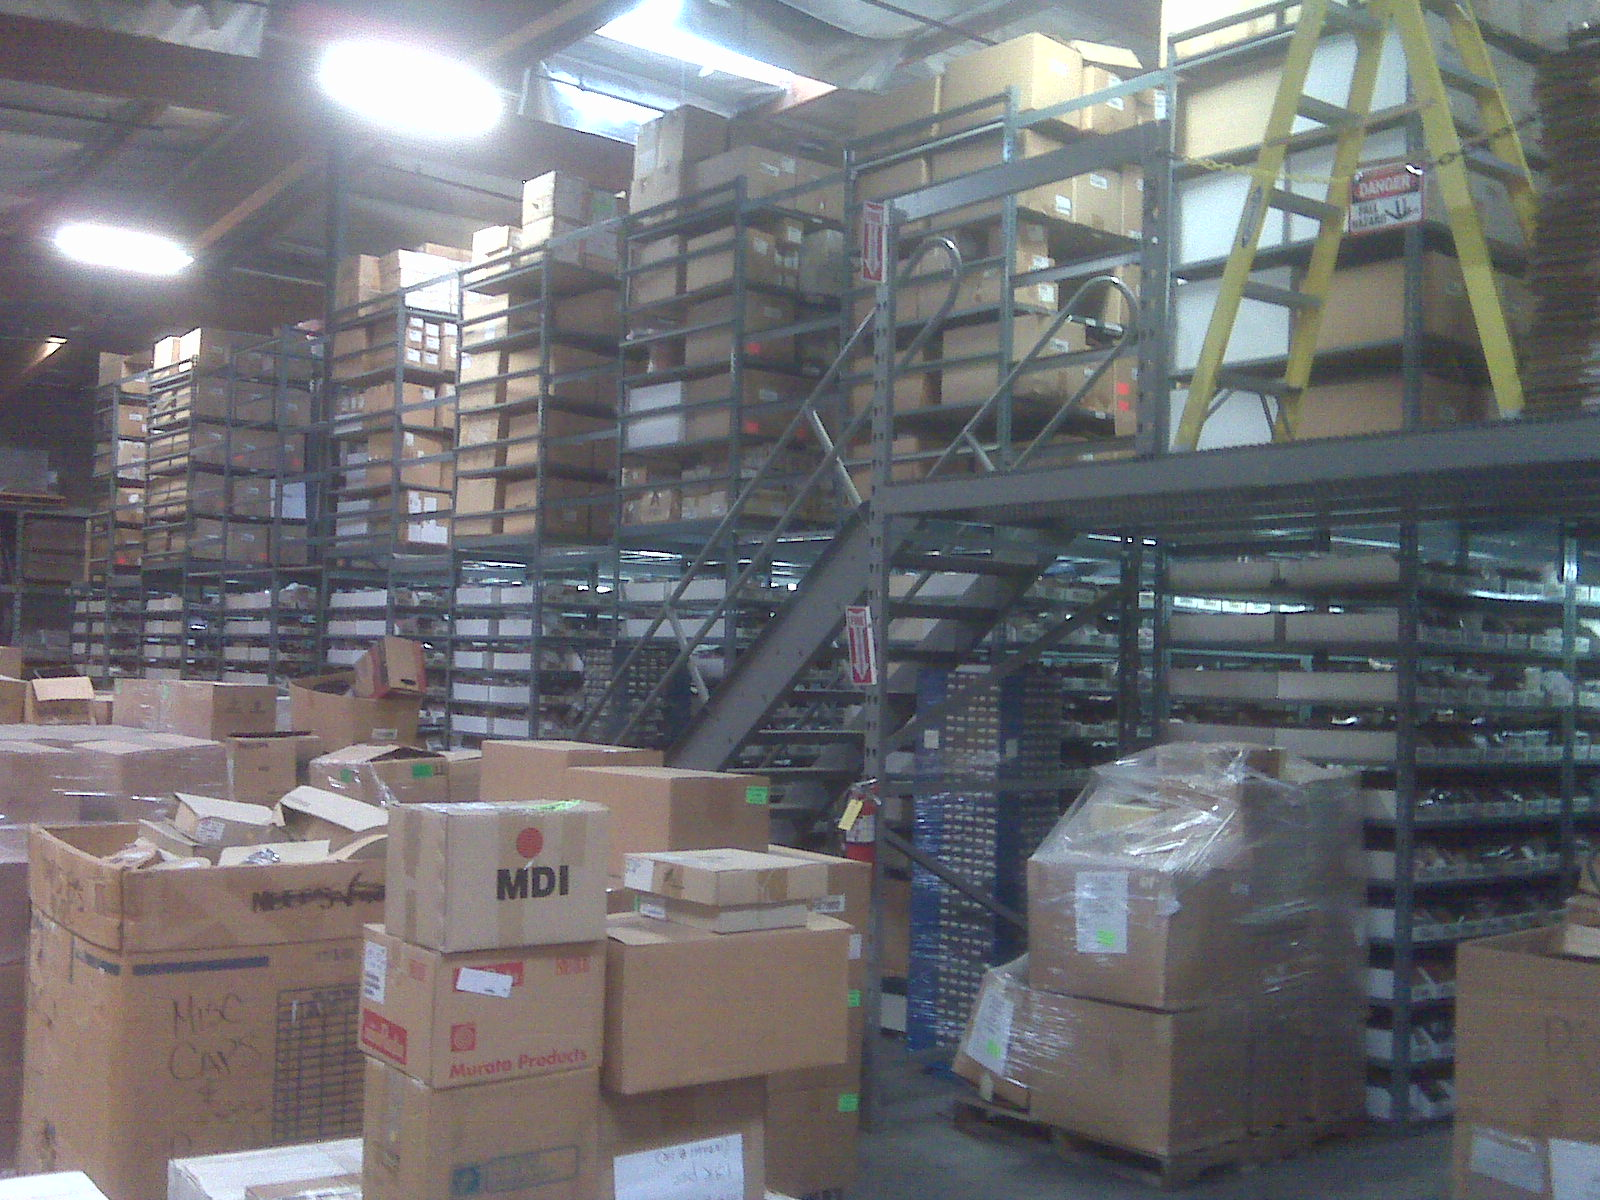 A Amp A Boltless Rack And Shelving Warehouse Storage Solutions Pallet Racks And Storage Shelving